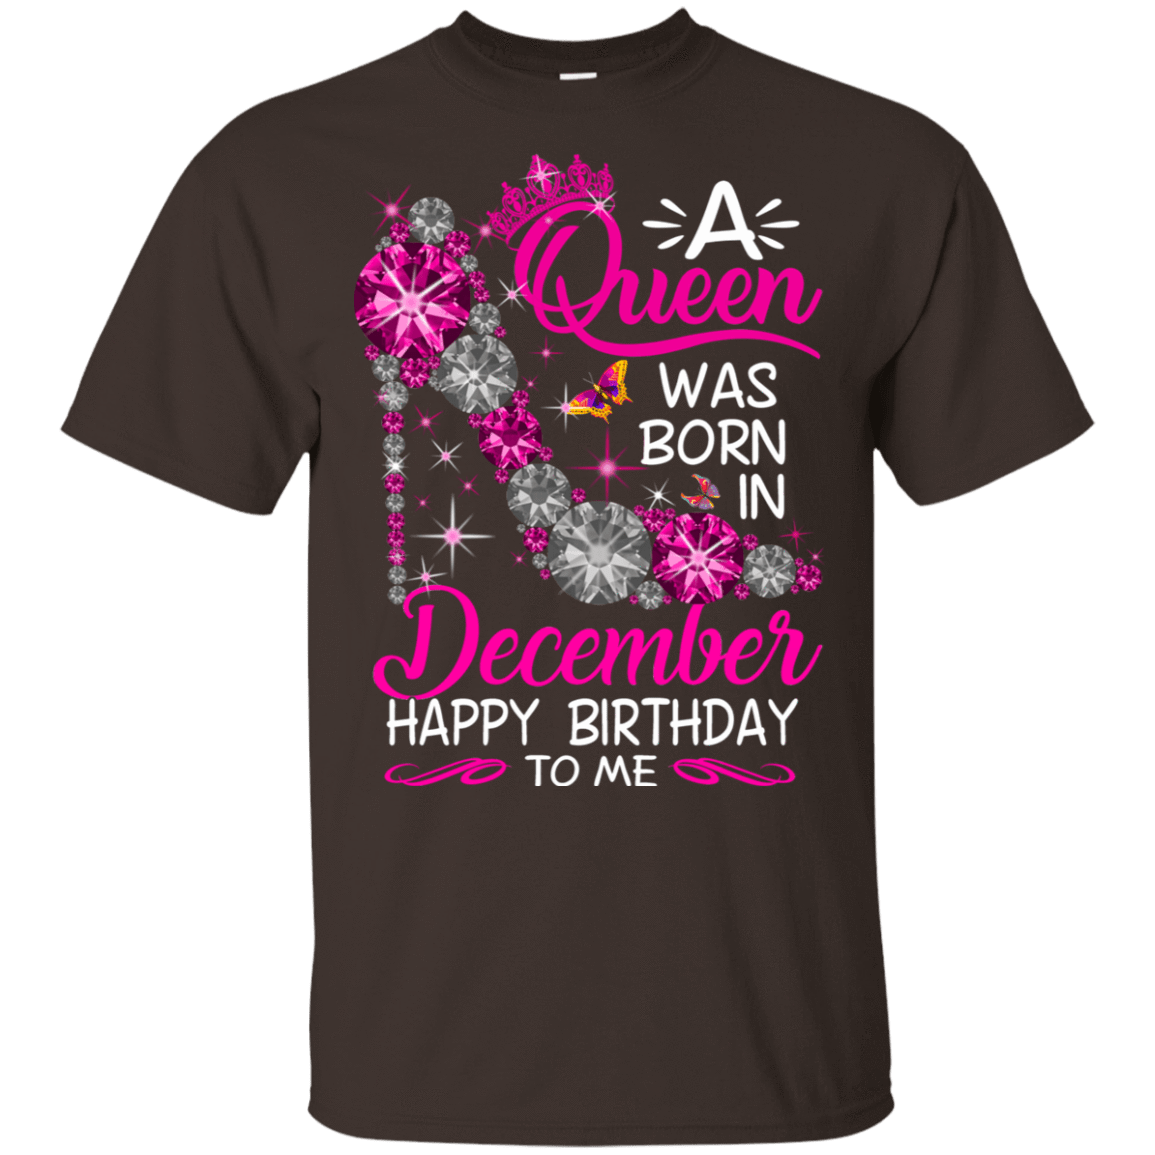 A Queen Was Born In December Happy Birthday To Me T-Shirts & Hoodies 22-2283-76451779-12087 - Tee Ript